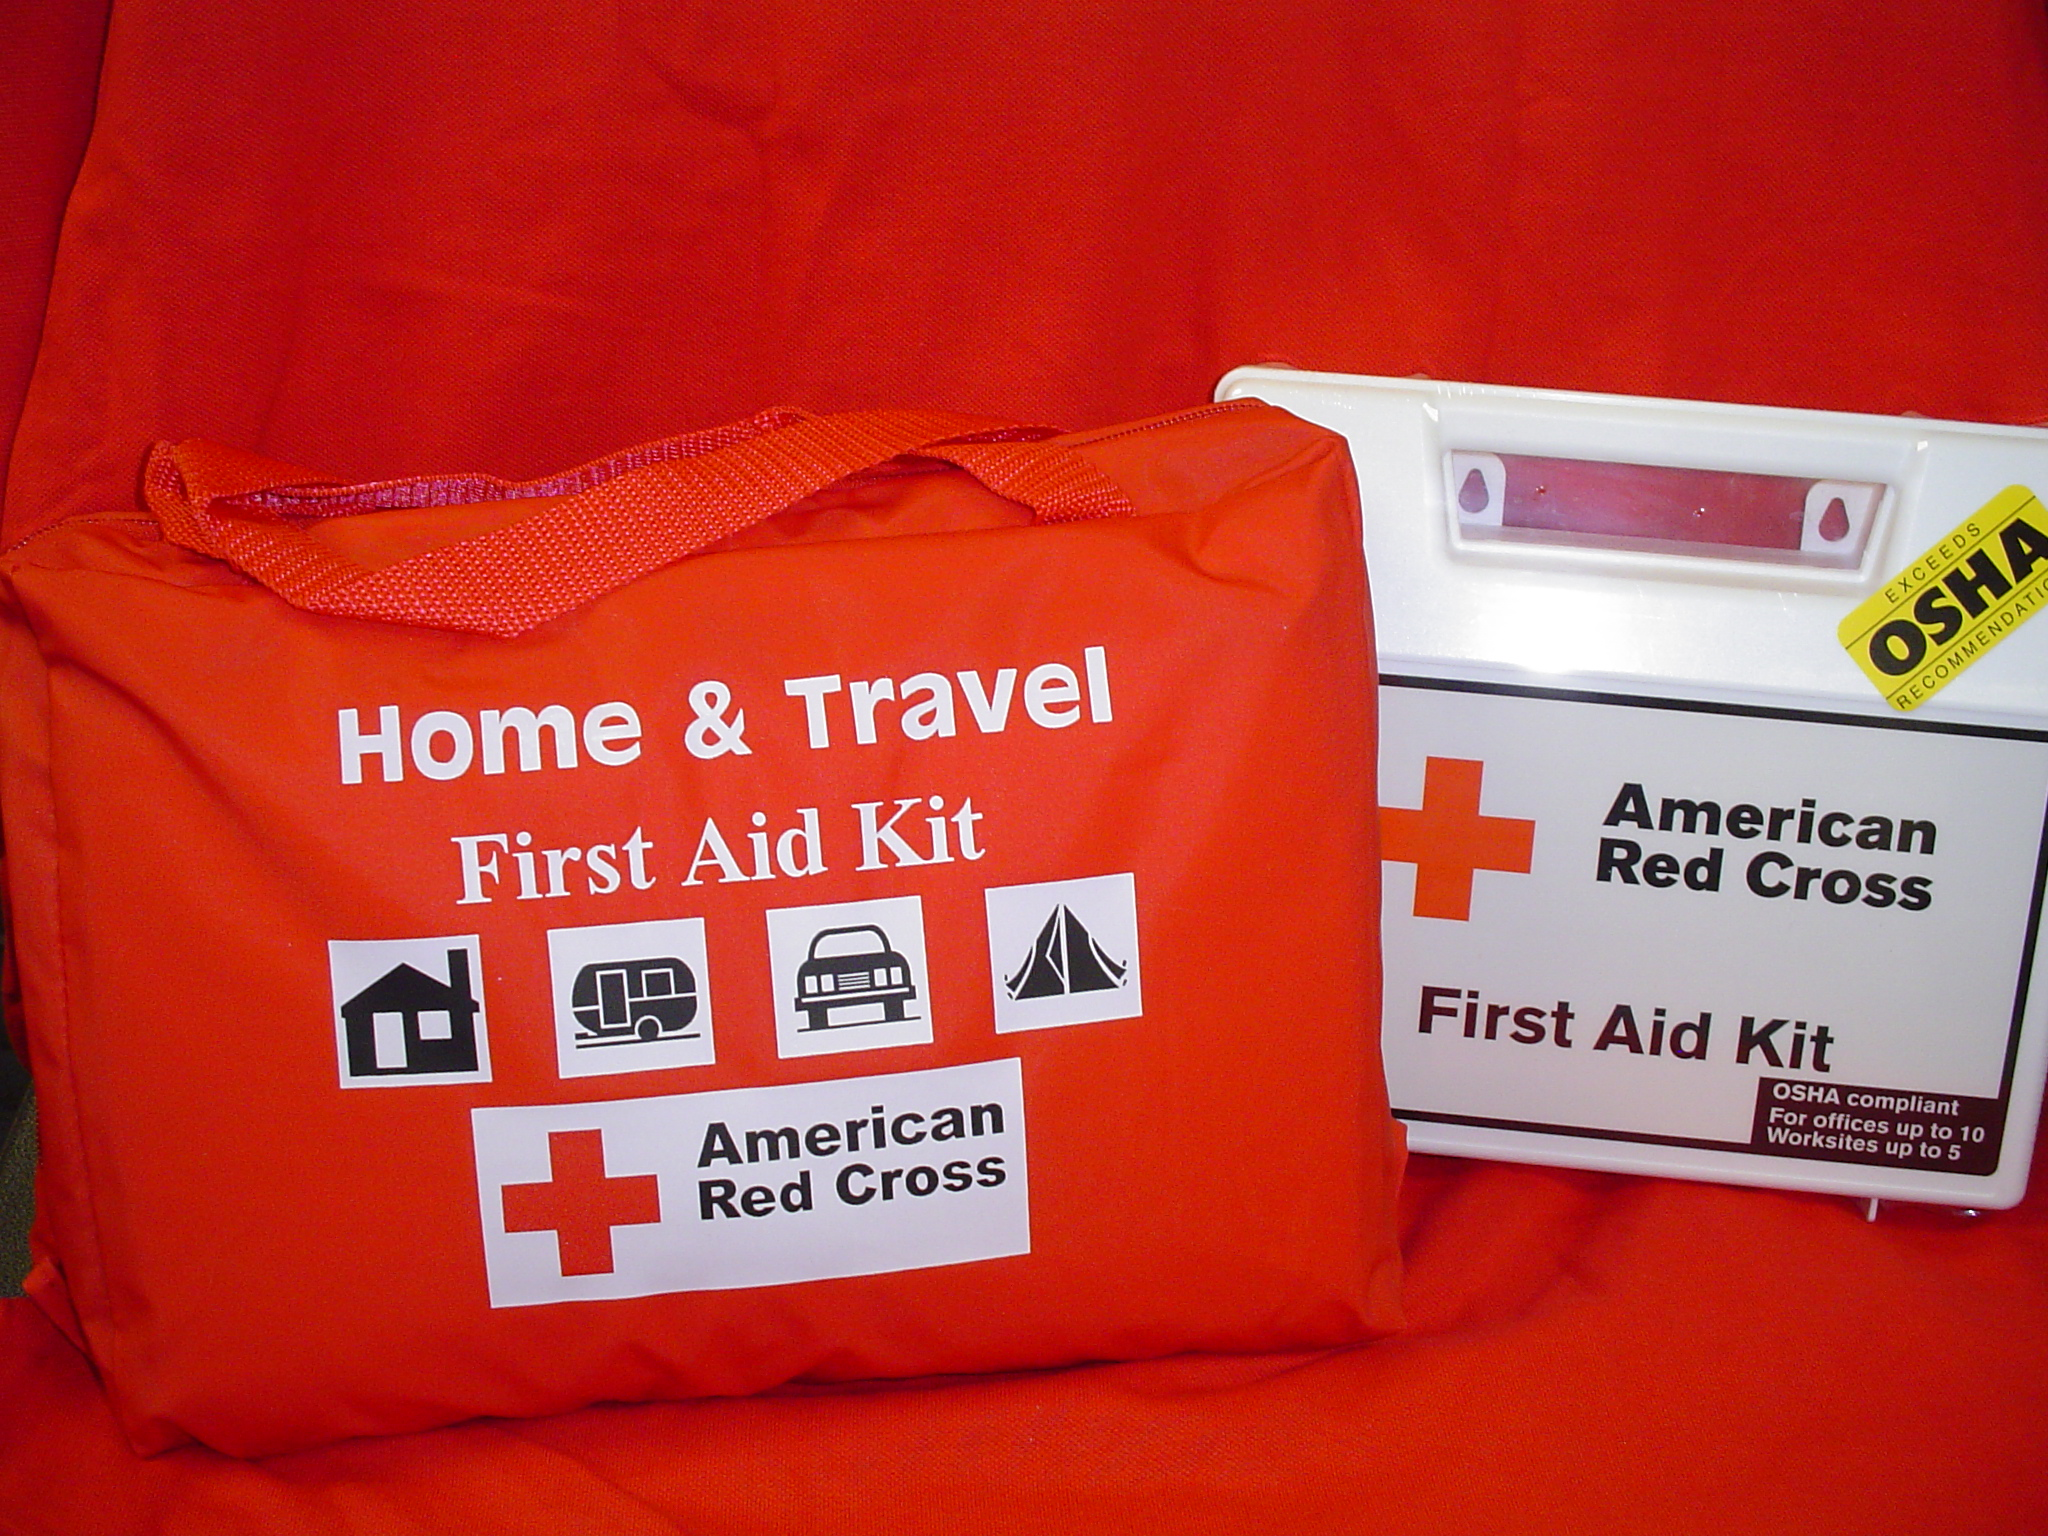 First Aid Kits | Free Images at Clker.com - vector clip art online ...